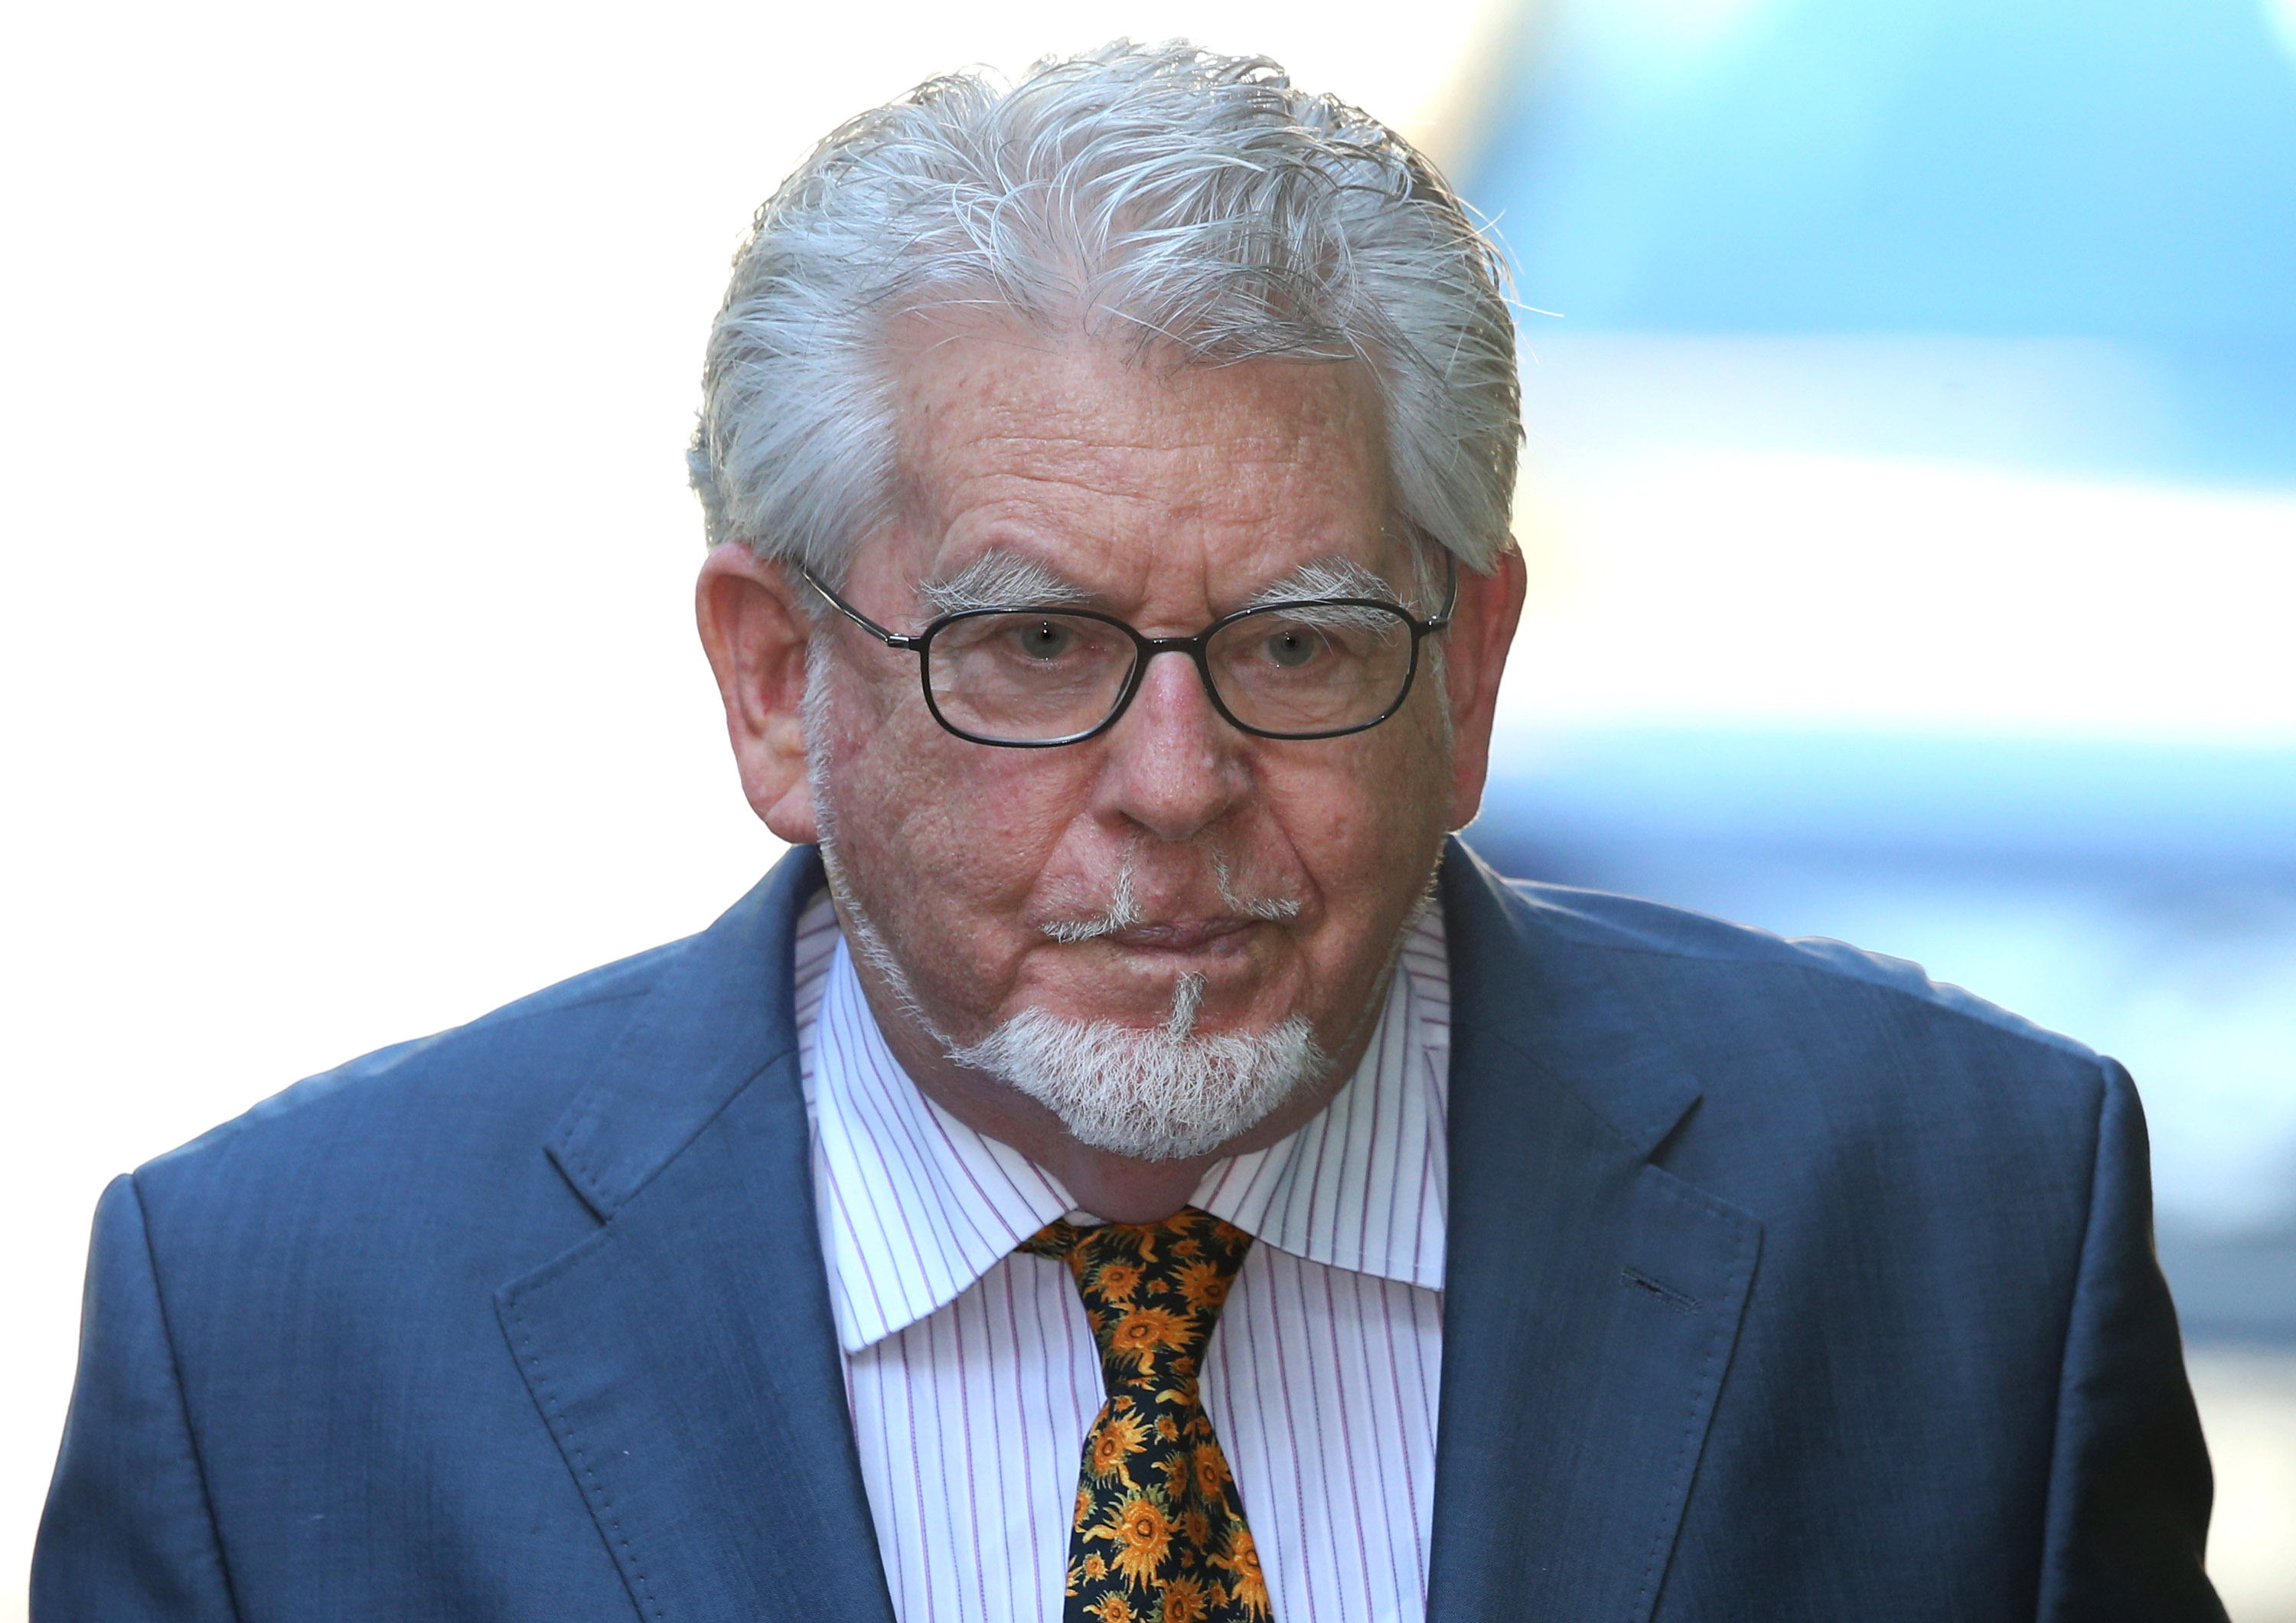 Artist and television personality Rolf Harris arrives at Southwark Crown Court in London on May 14, 2014